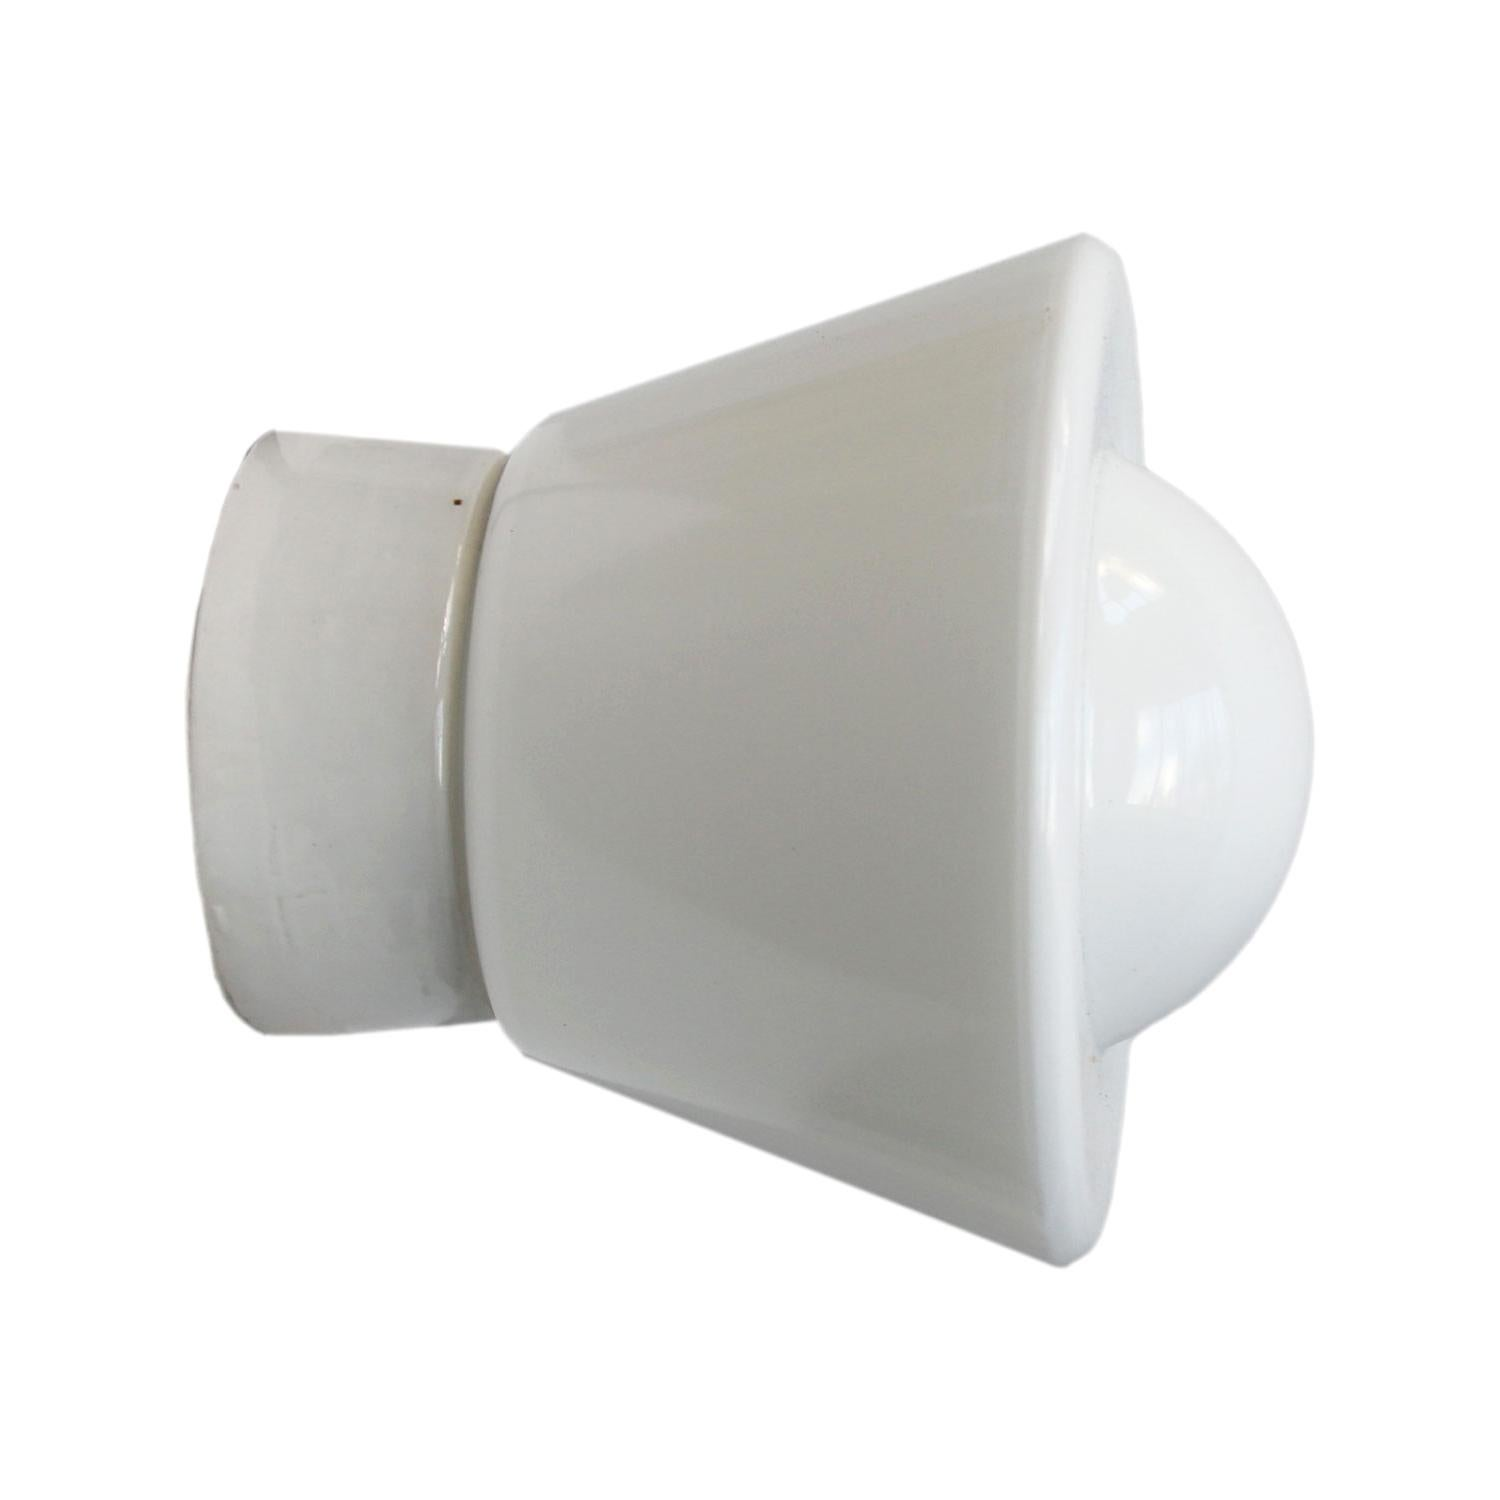 White Porcelain Vintage Industrial Opaline Glass Wall Lamp Scones